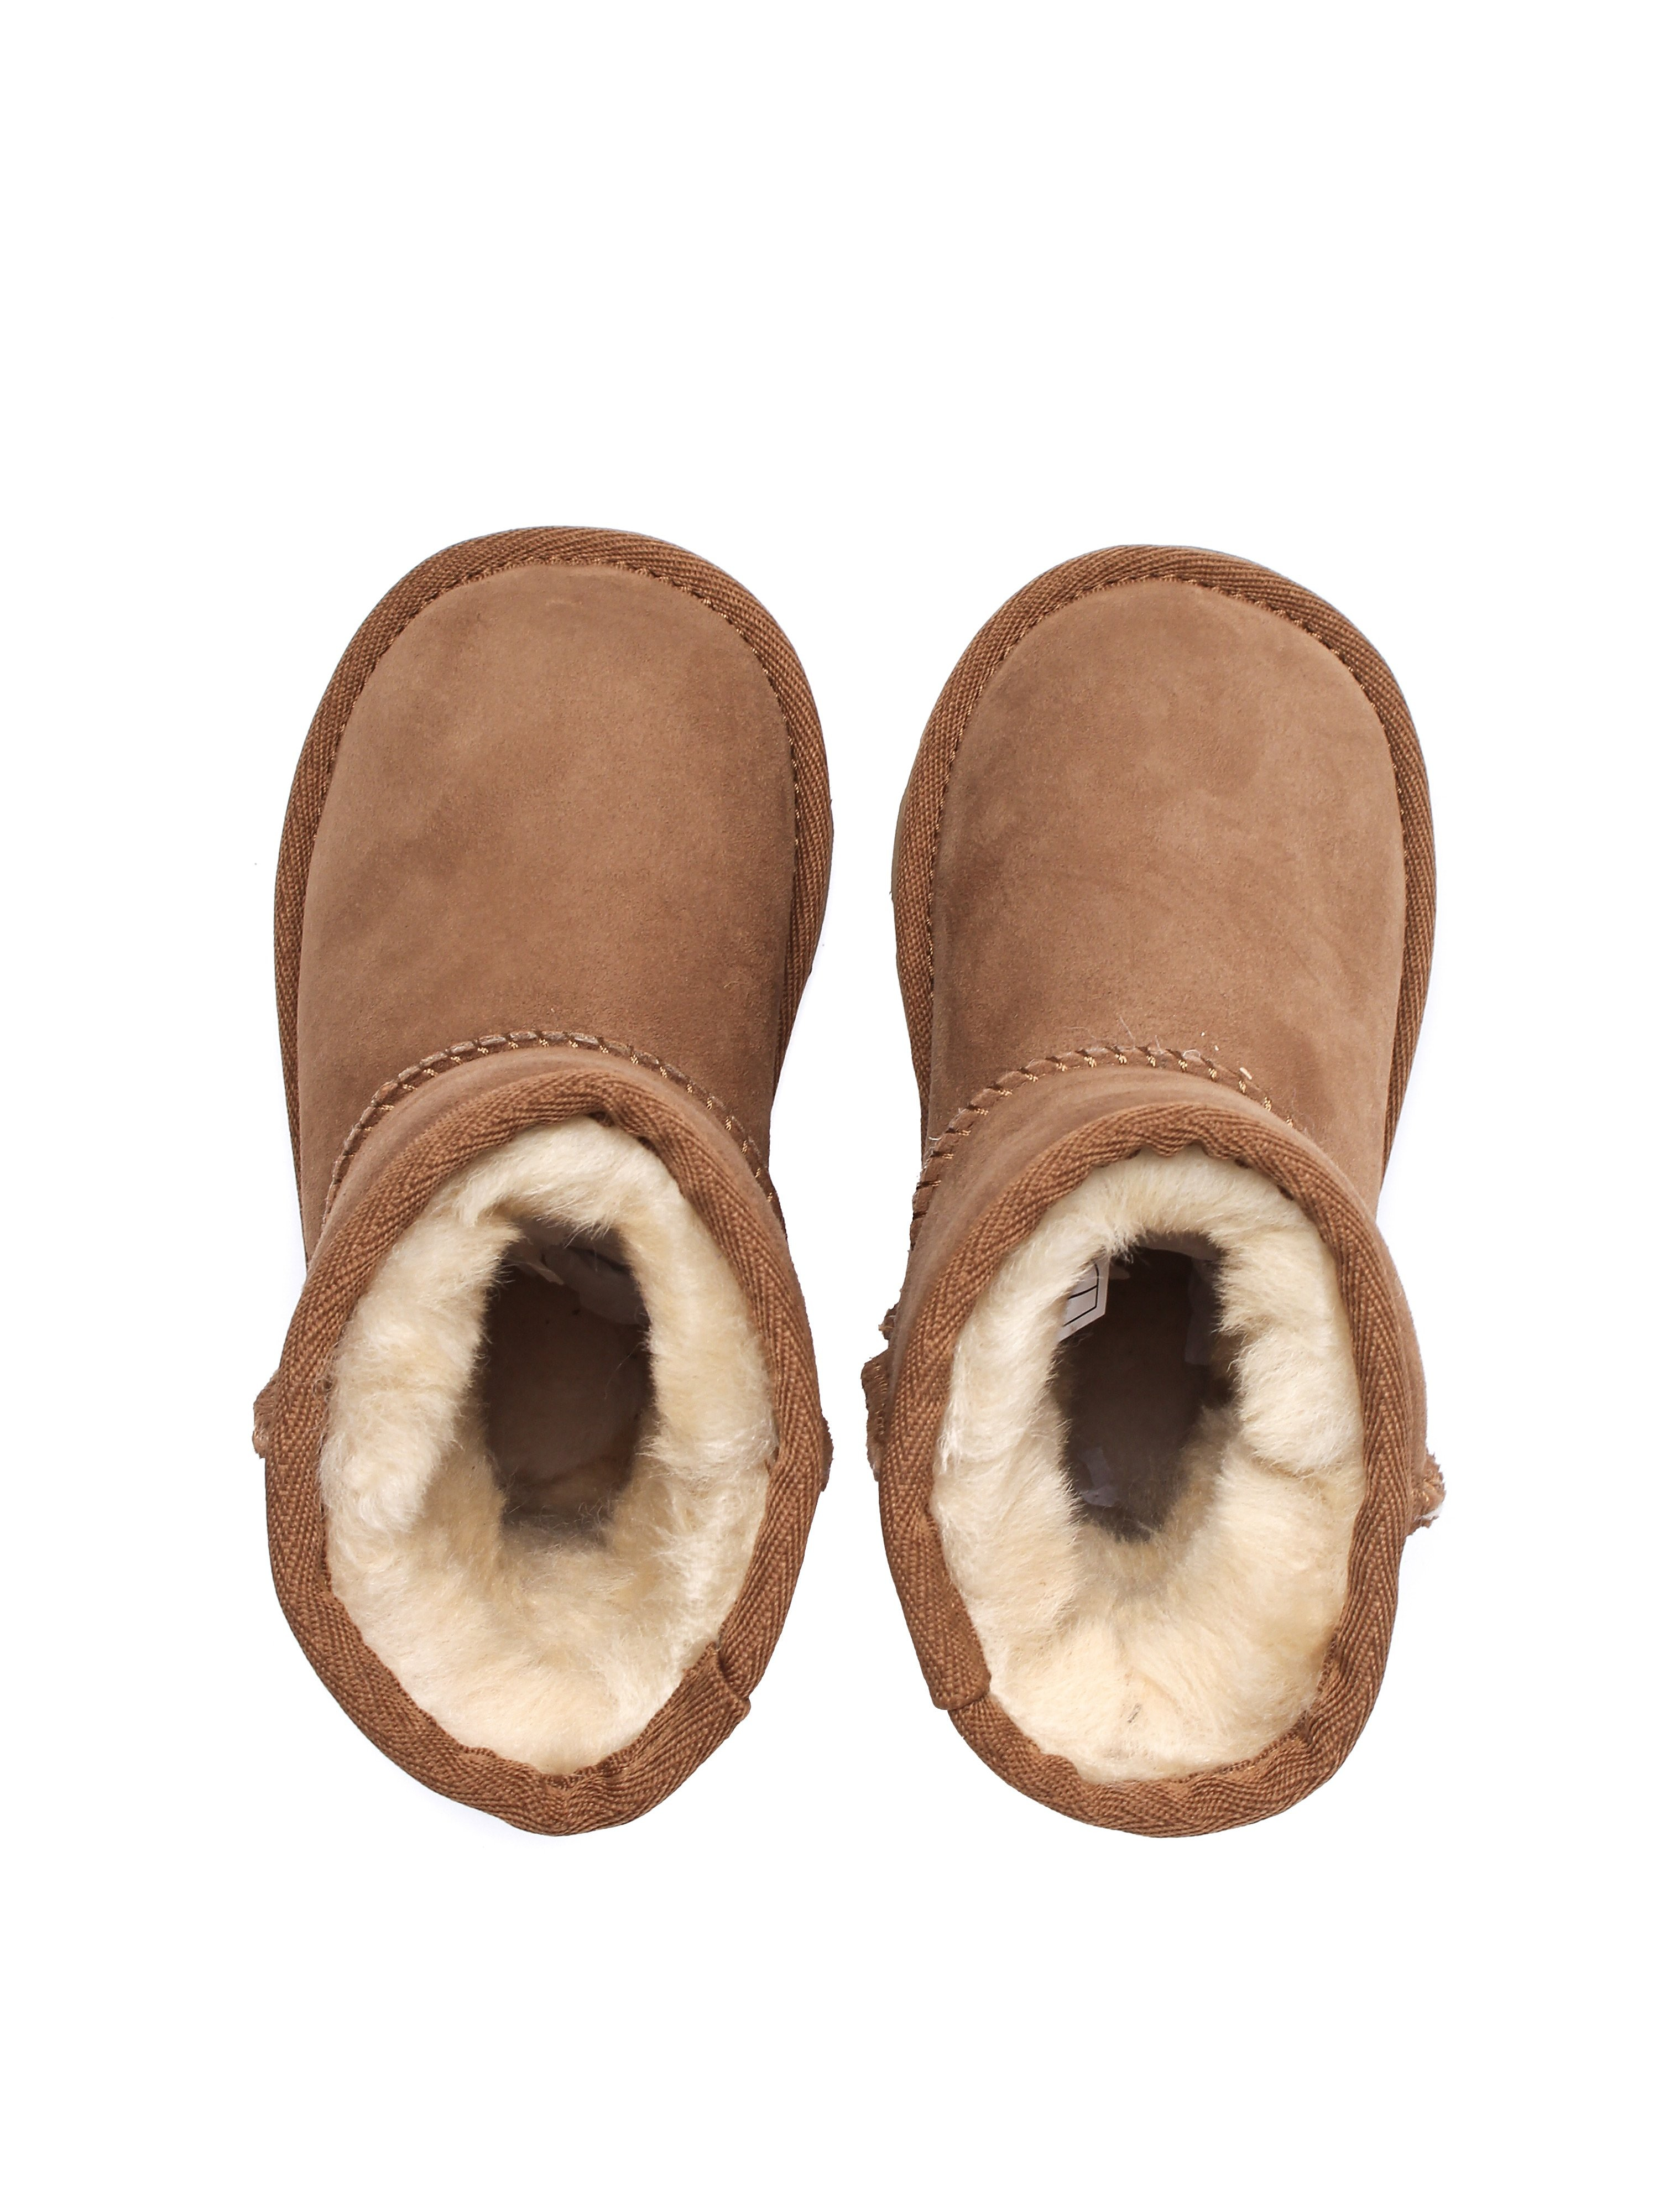 UGG Infant Classic Short II Sheepskin Boots - Chestnut